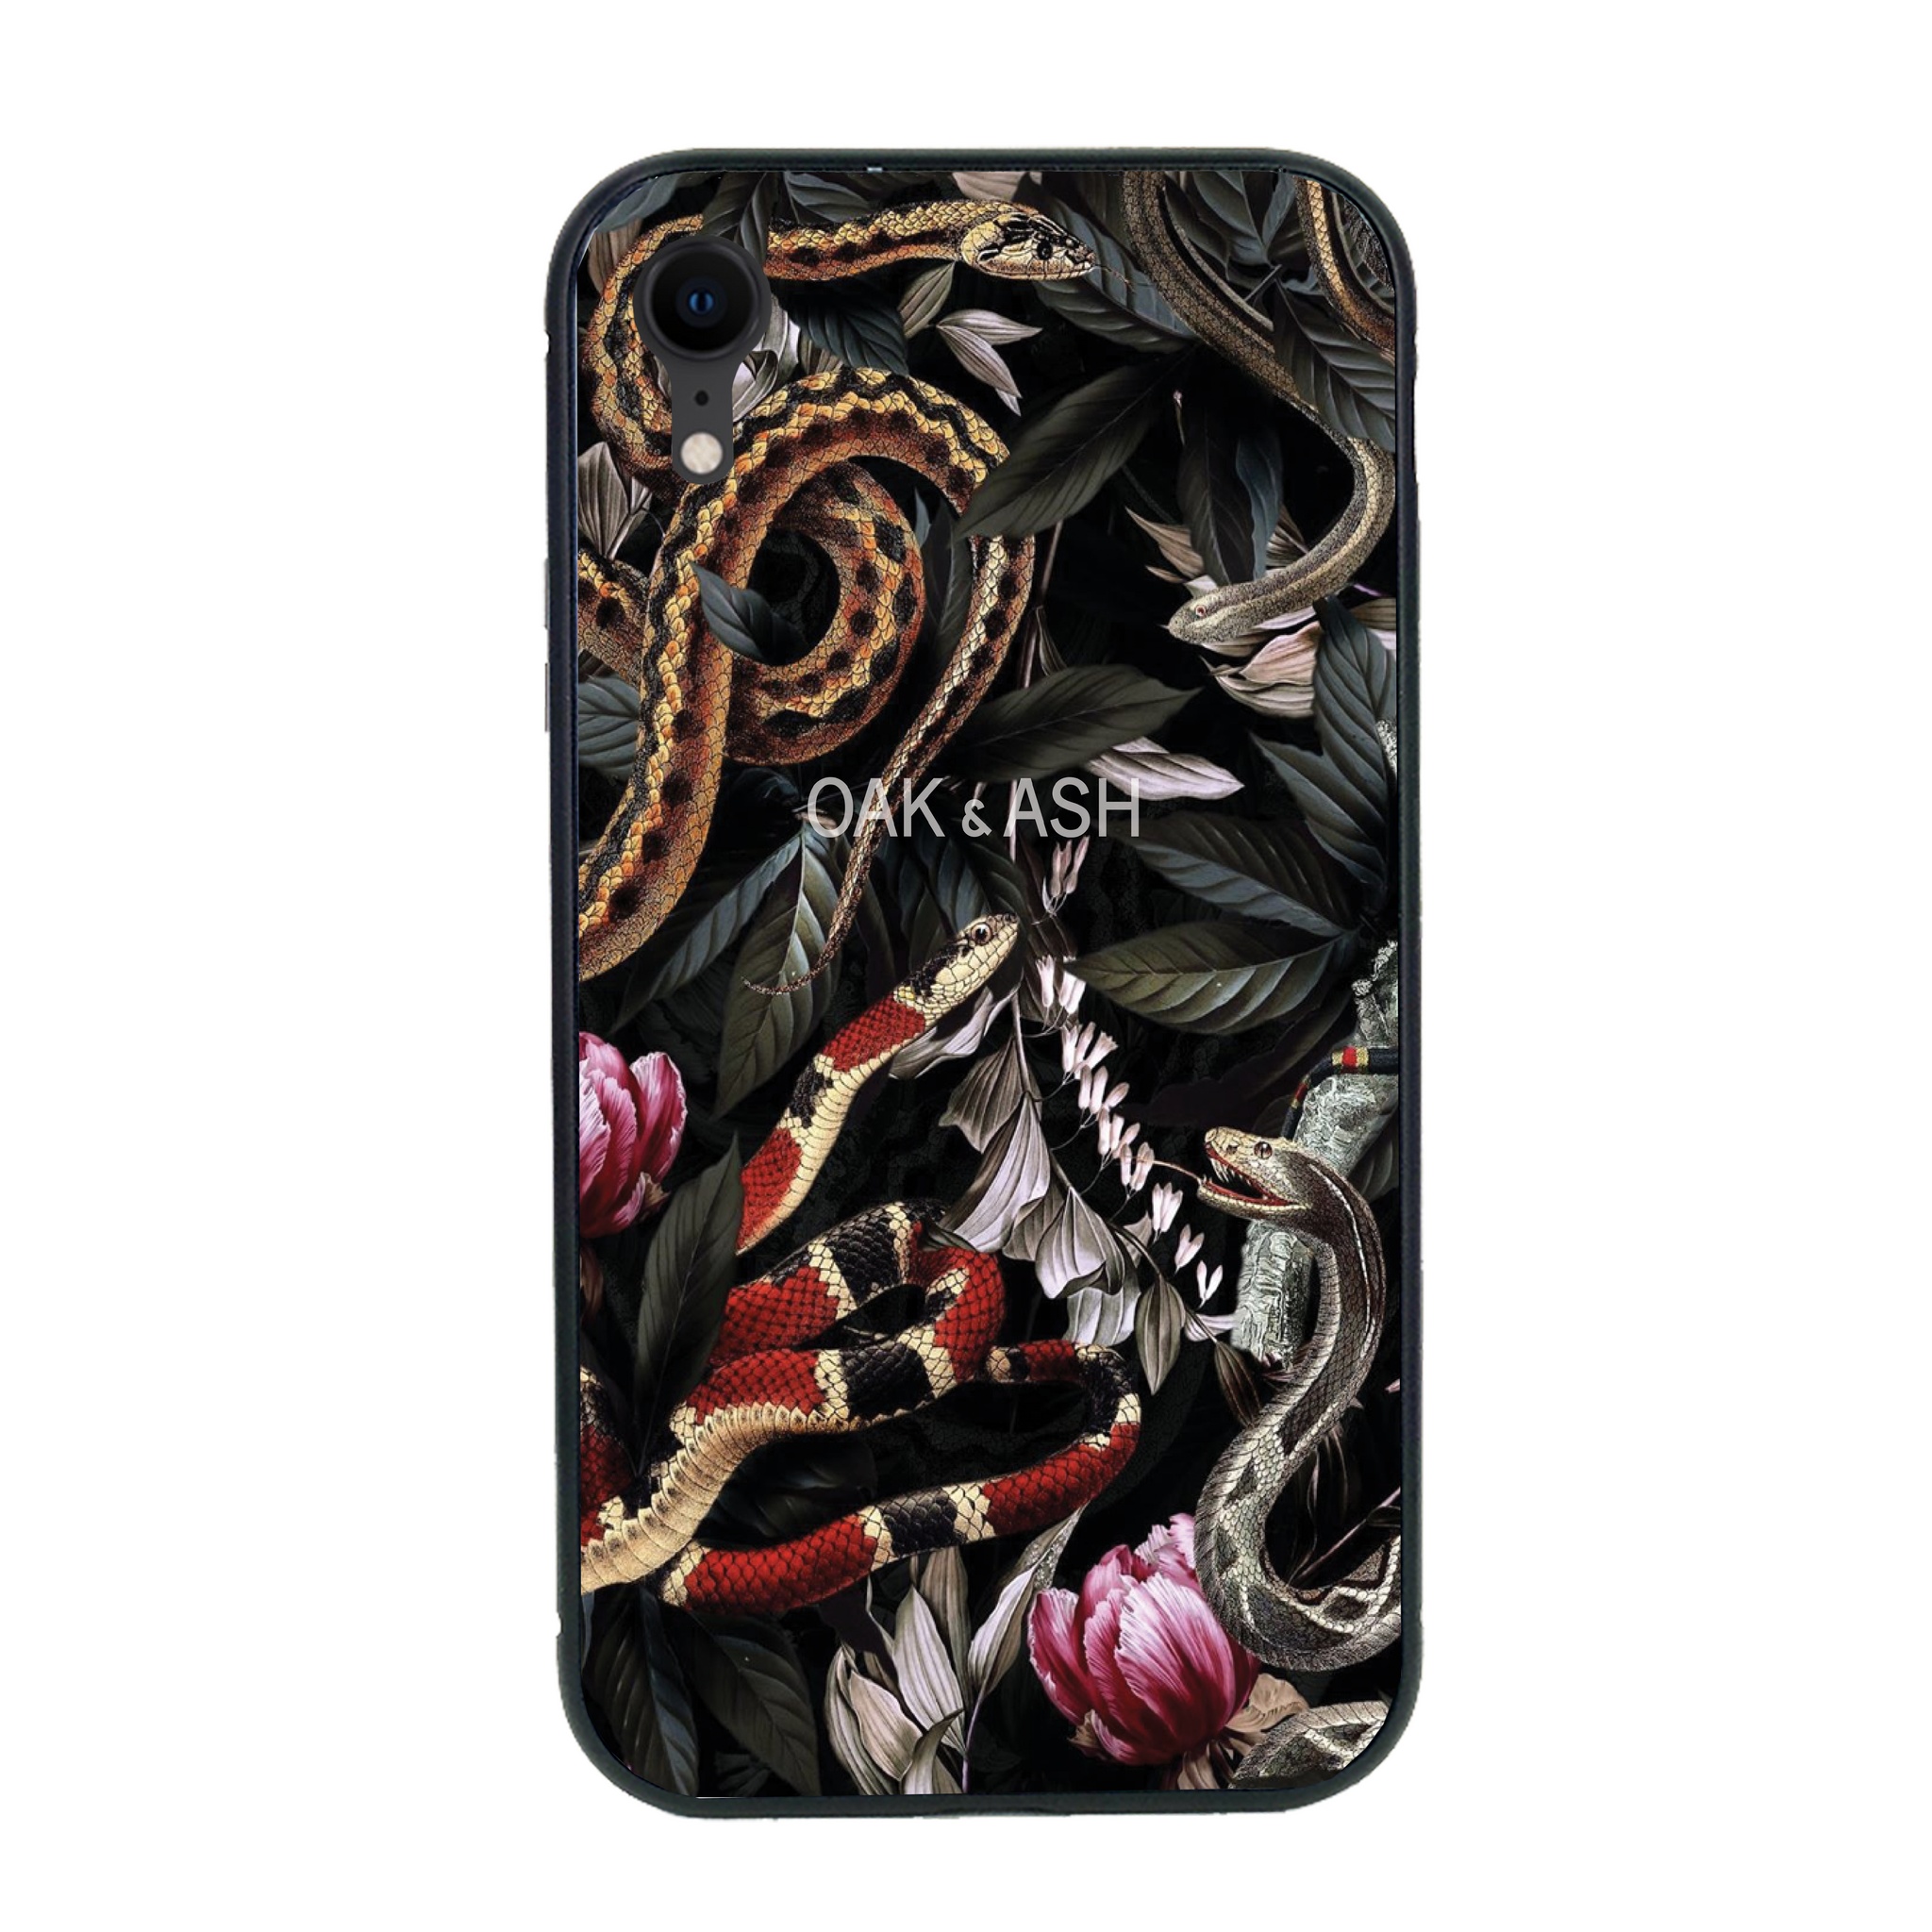 Serpents | Phone Case for iPhone XR - OAK & ASH